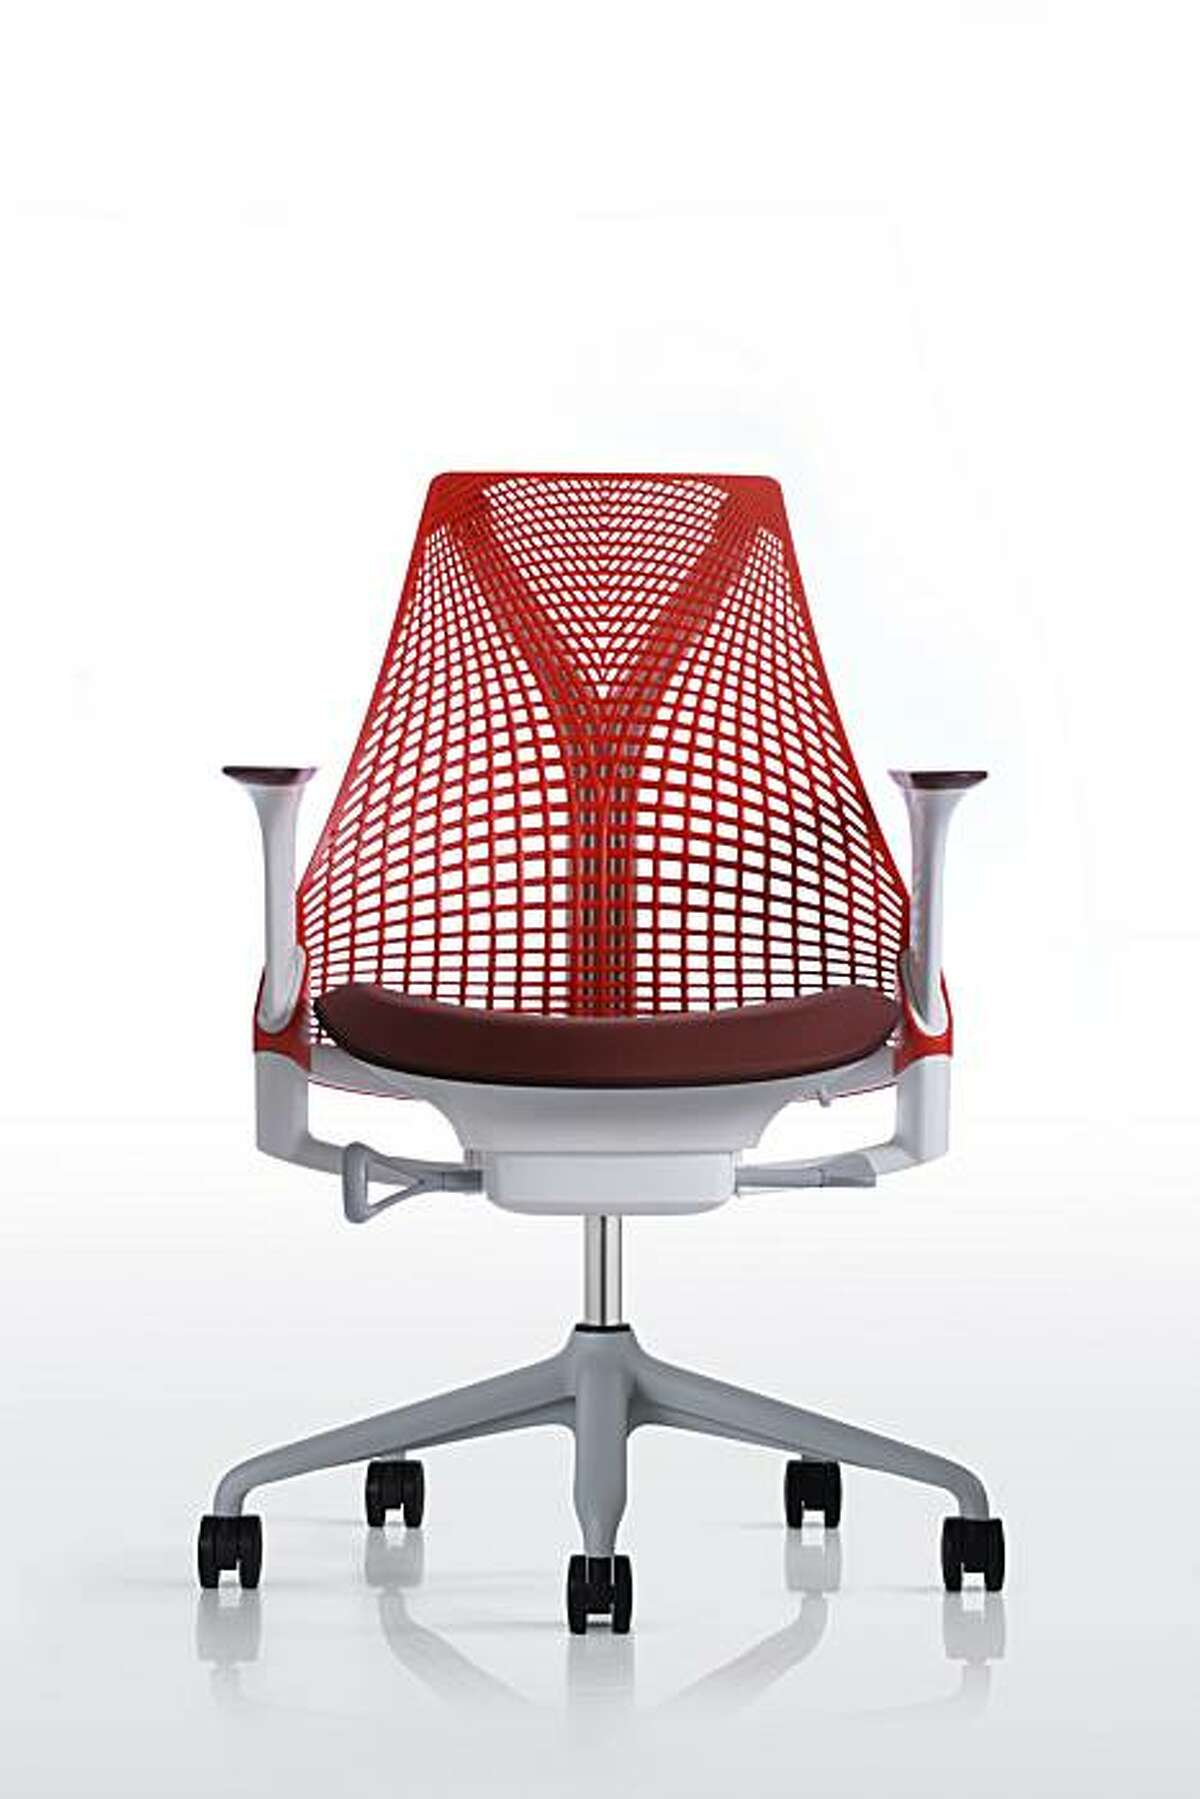 The new Sayl chair by San Francisco designer Yves Behar for Herman Miller costs under $400. Photo courtesy of Fuseproject.